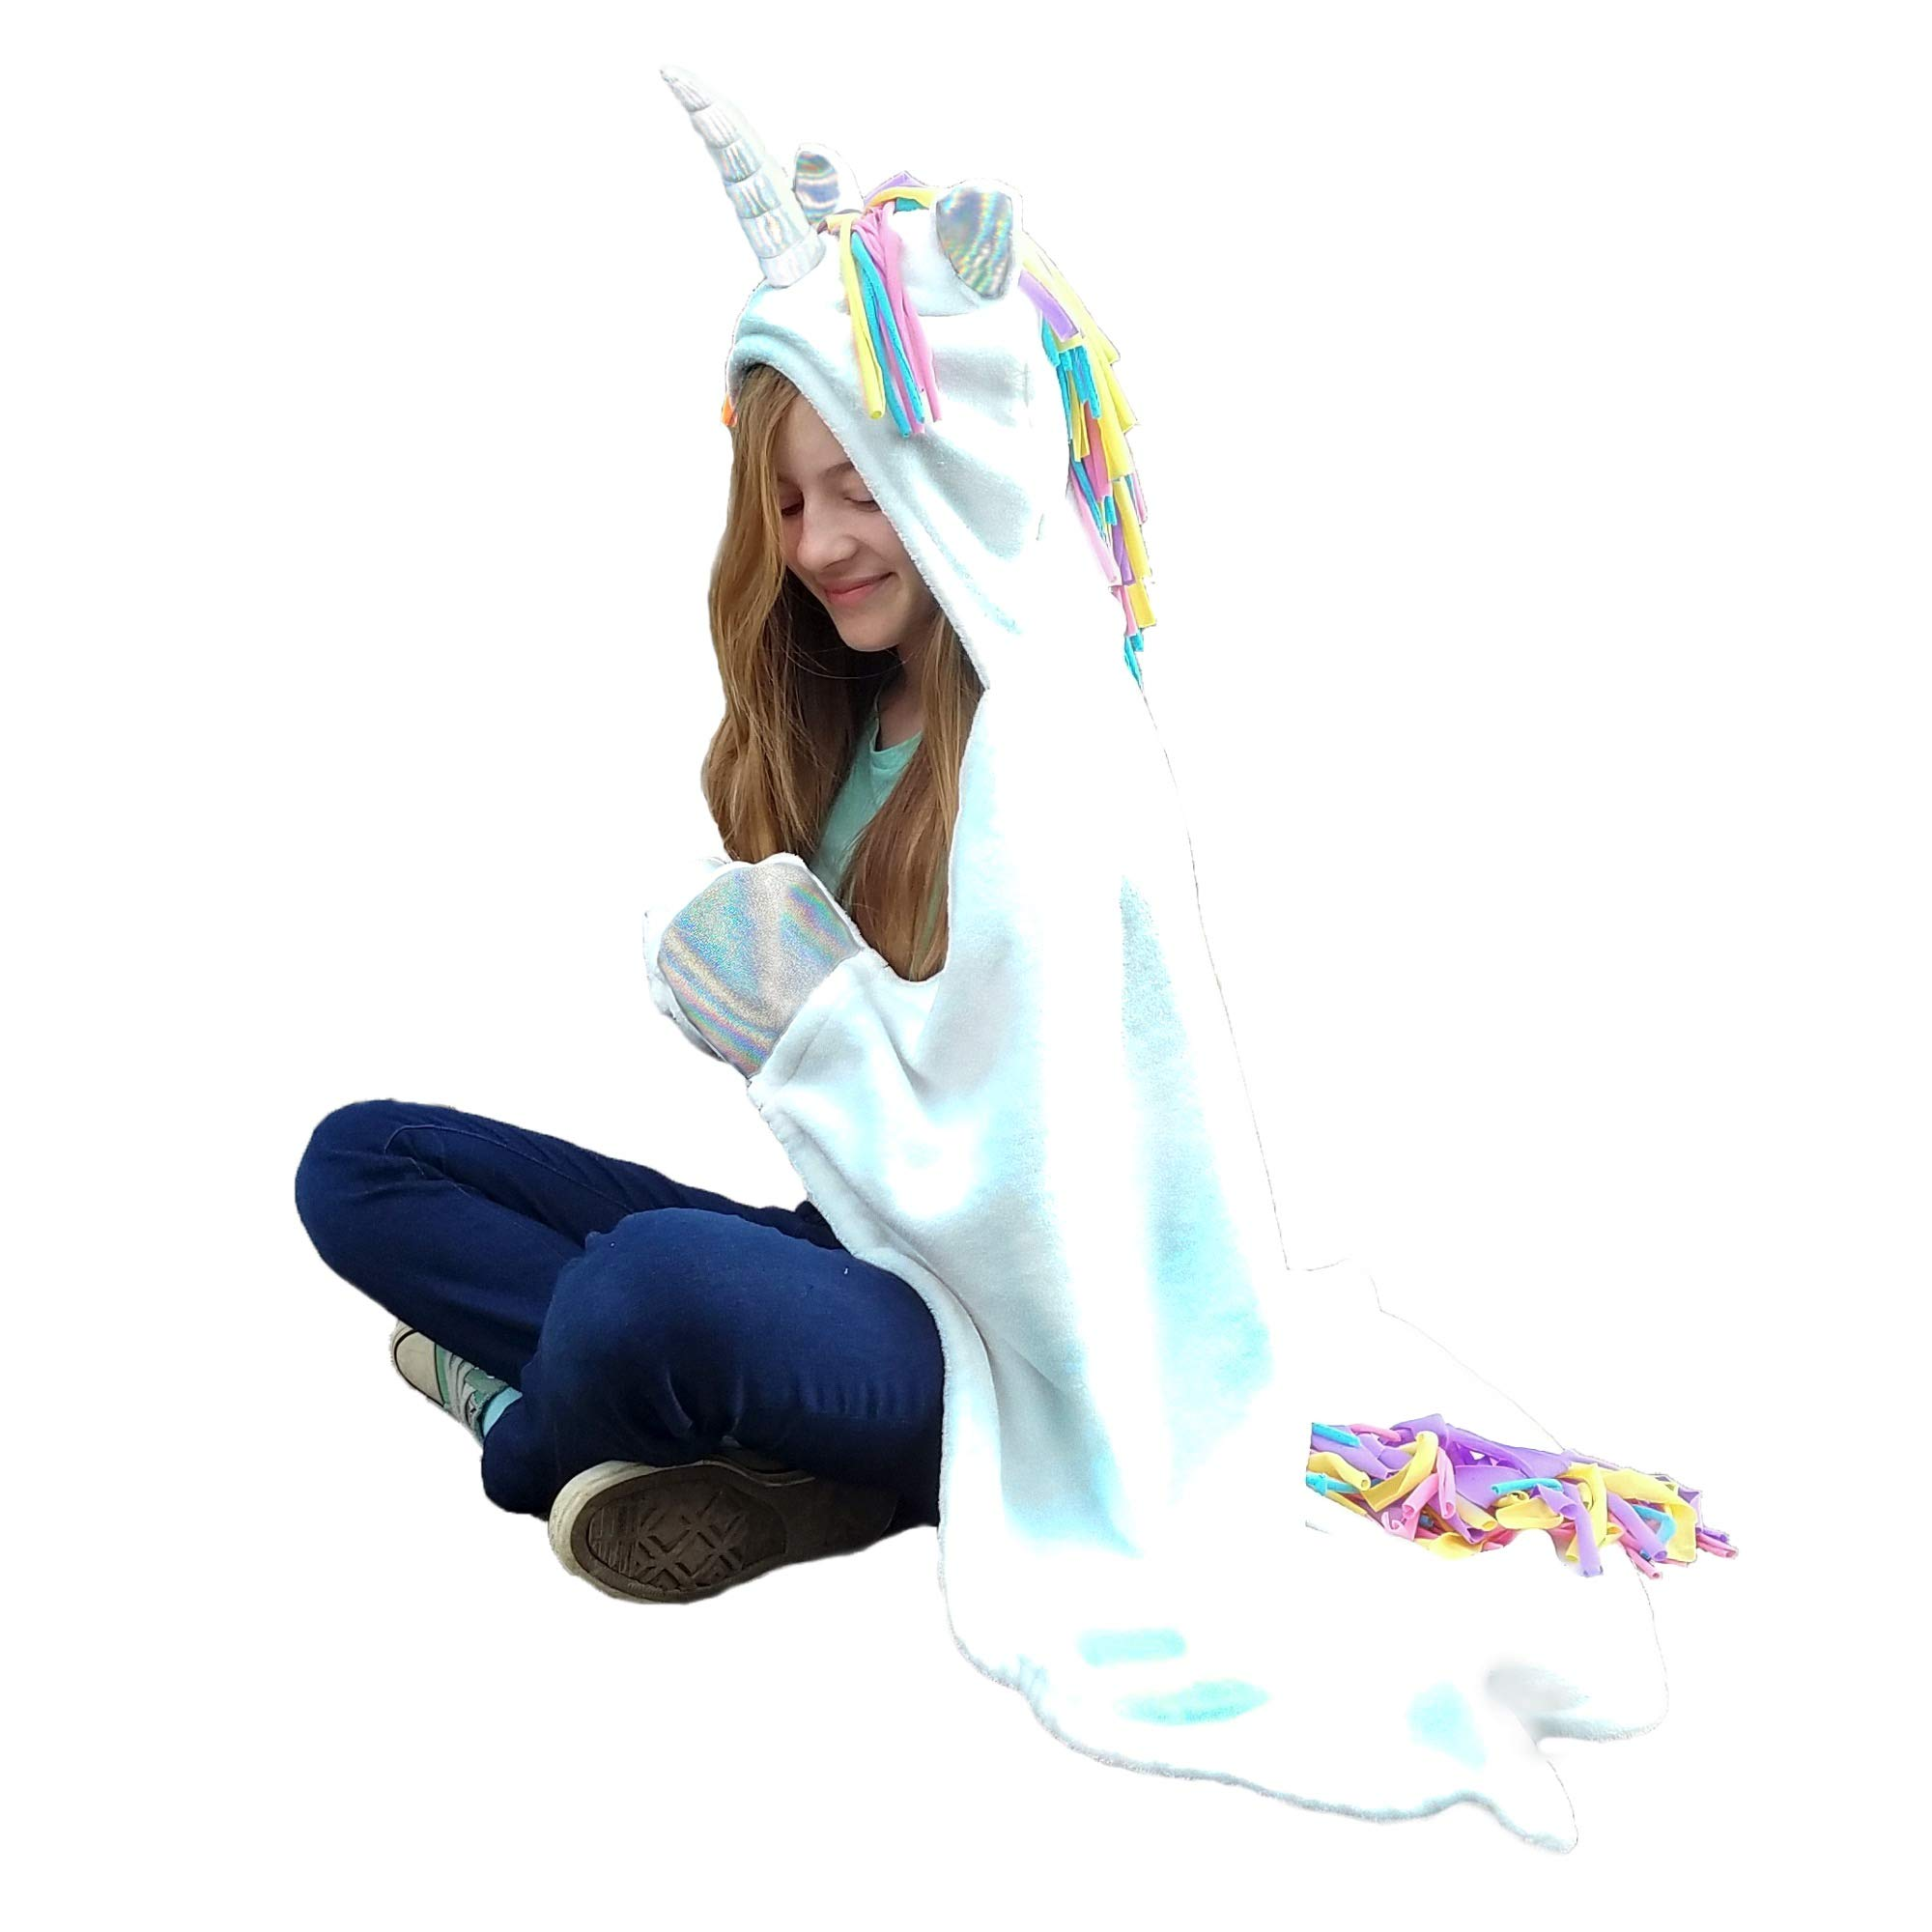 Hooded Unicorn Blanket for Girls, Teens, and Adults, White Plush Wearable Animal Throw with Rainbow and Iridescent Details